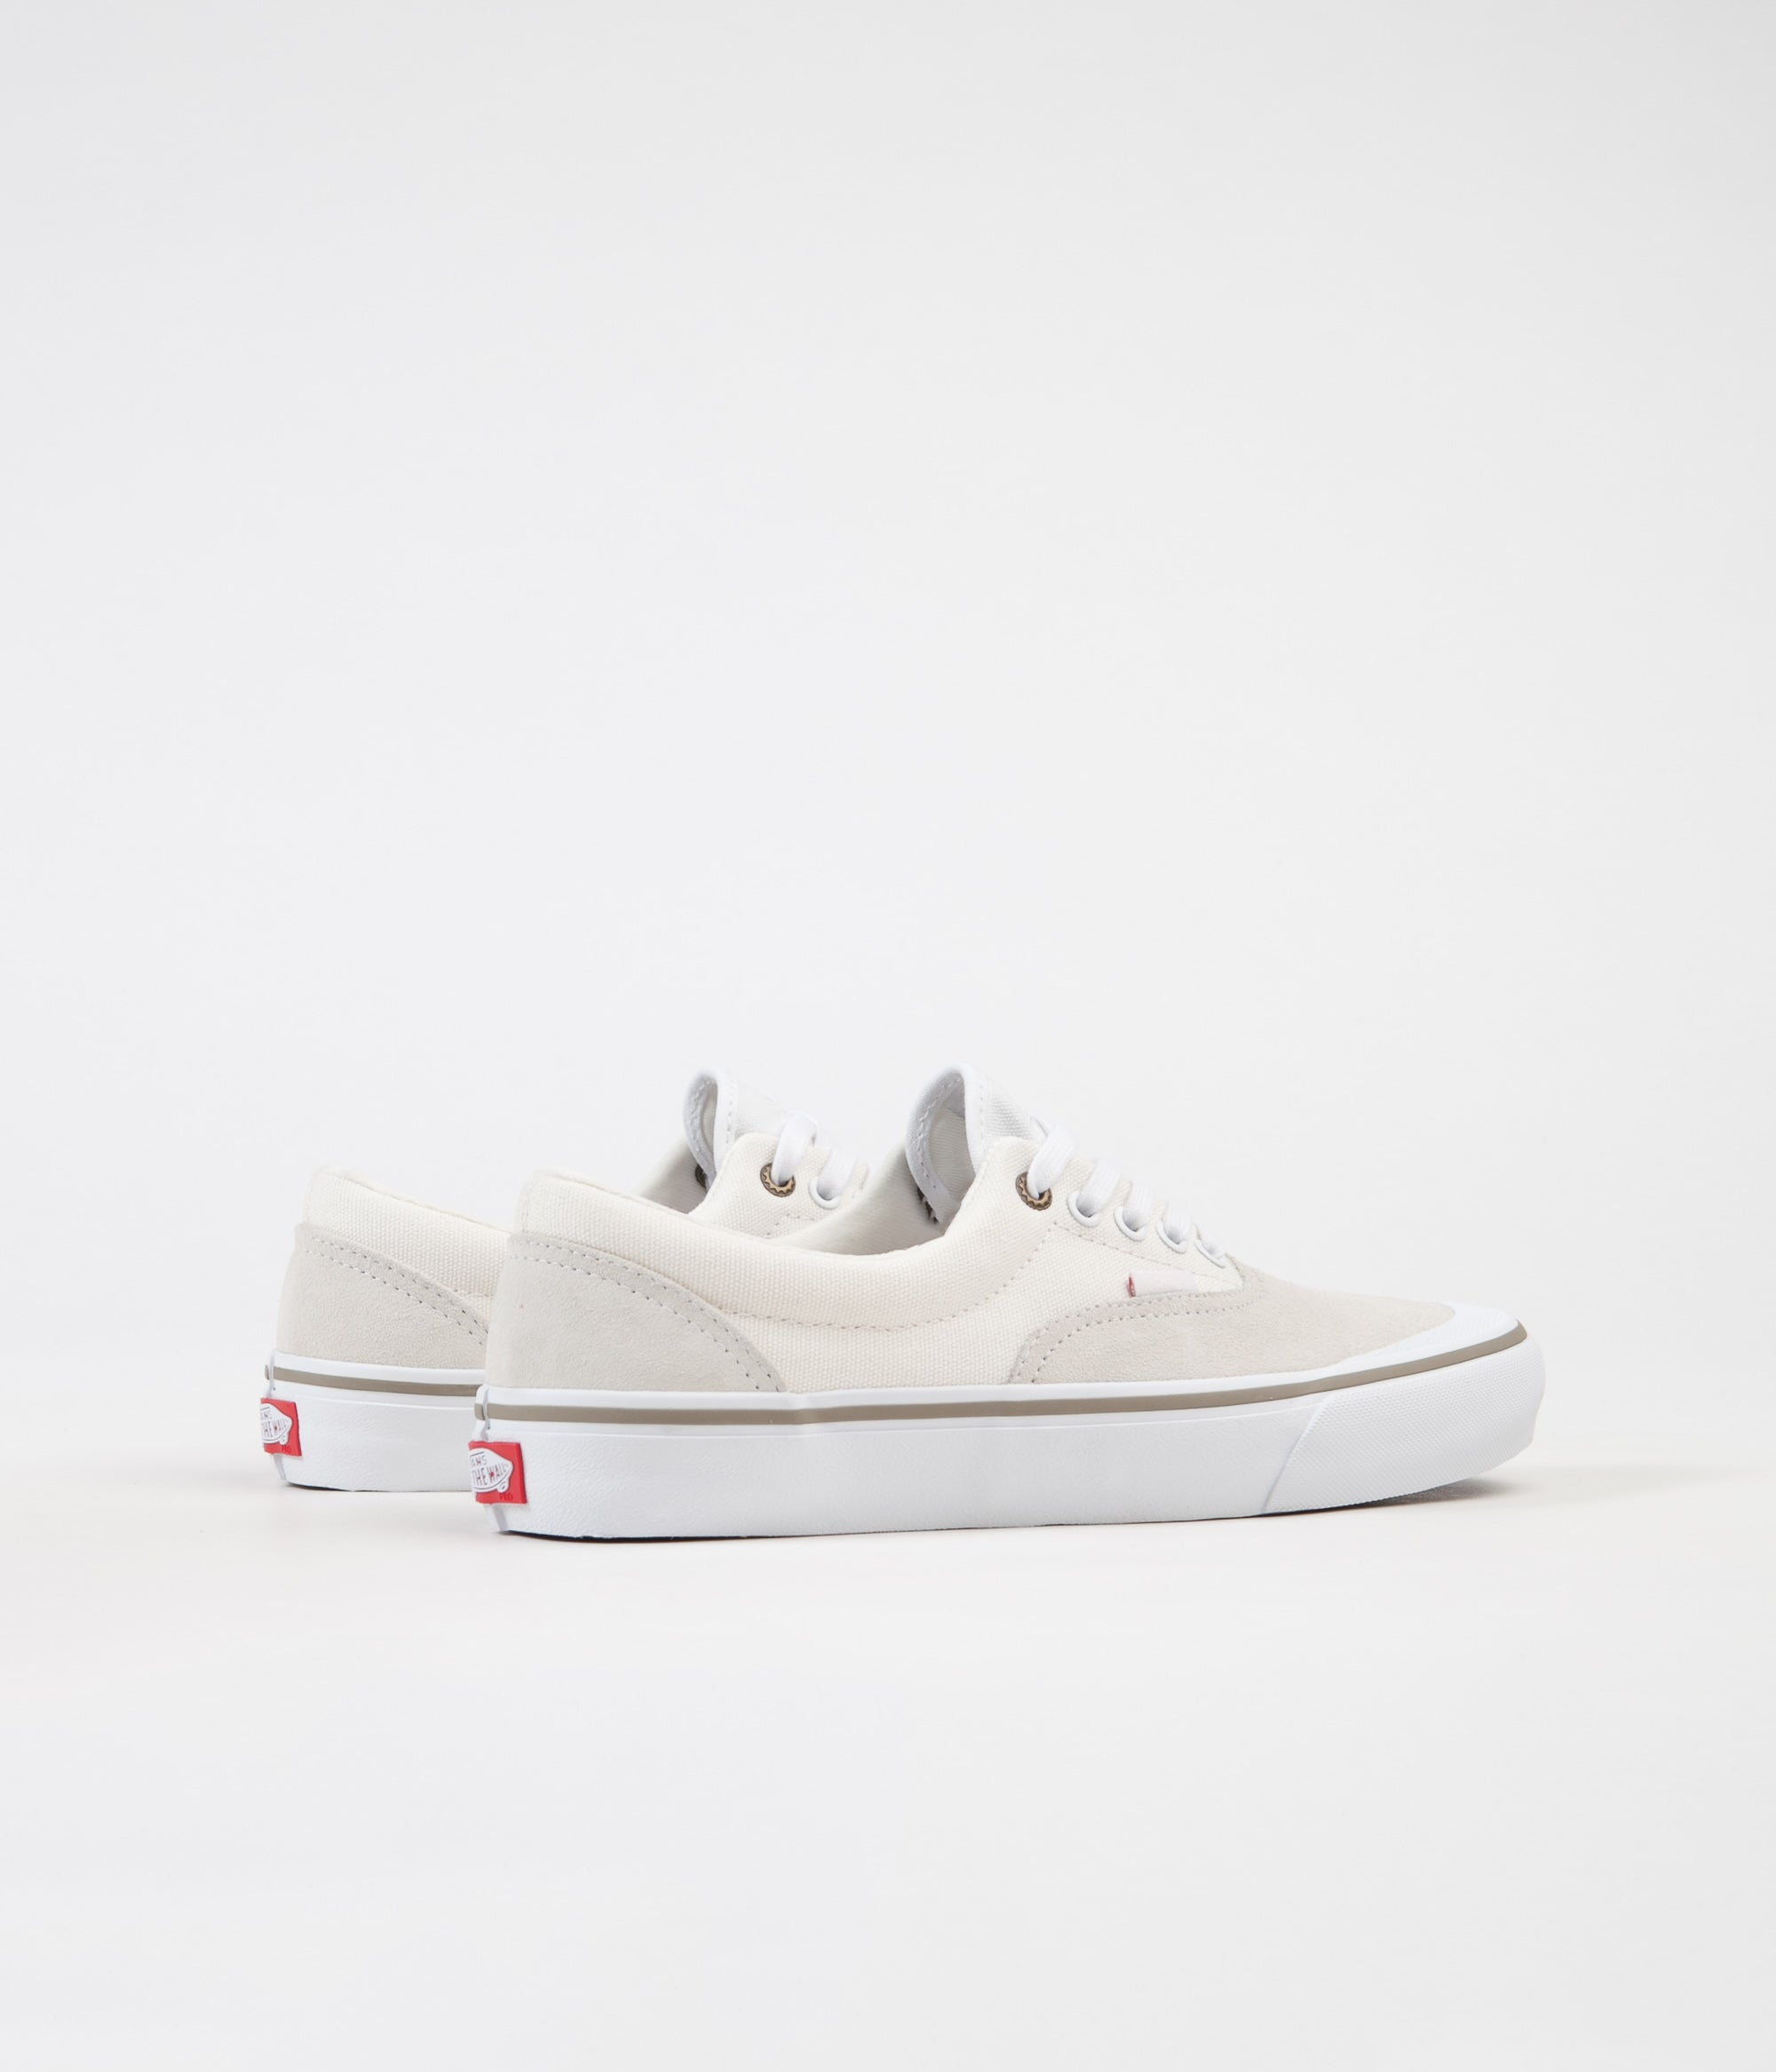 5be03bfcd1 ... Vans Era Pro Dakota Roche Shoes - Marshmallow   White ...